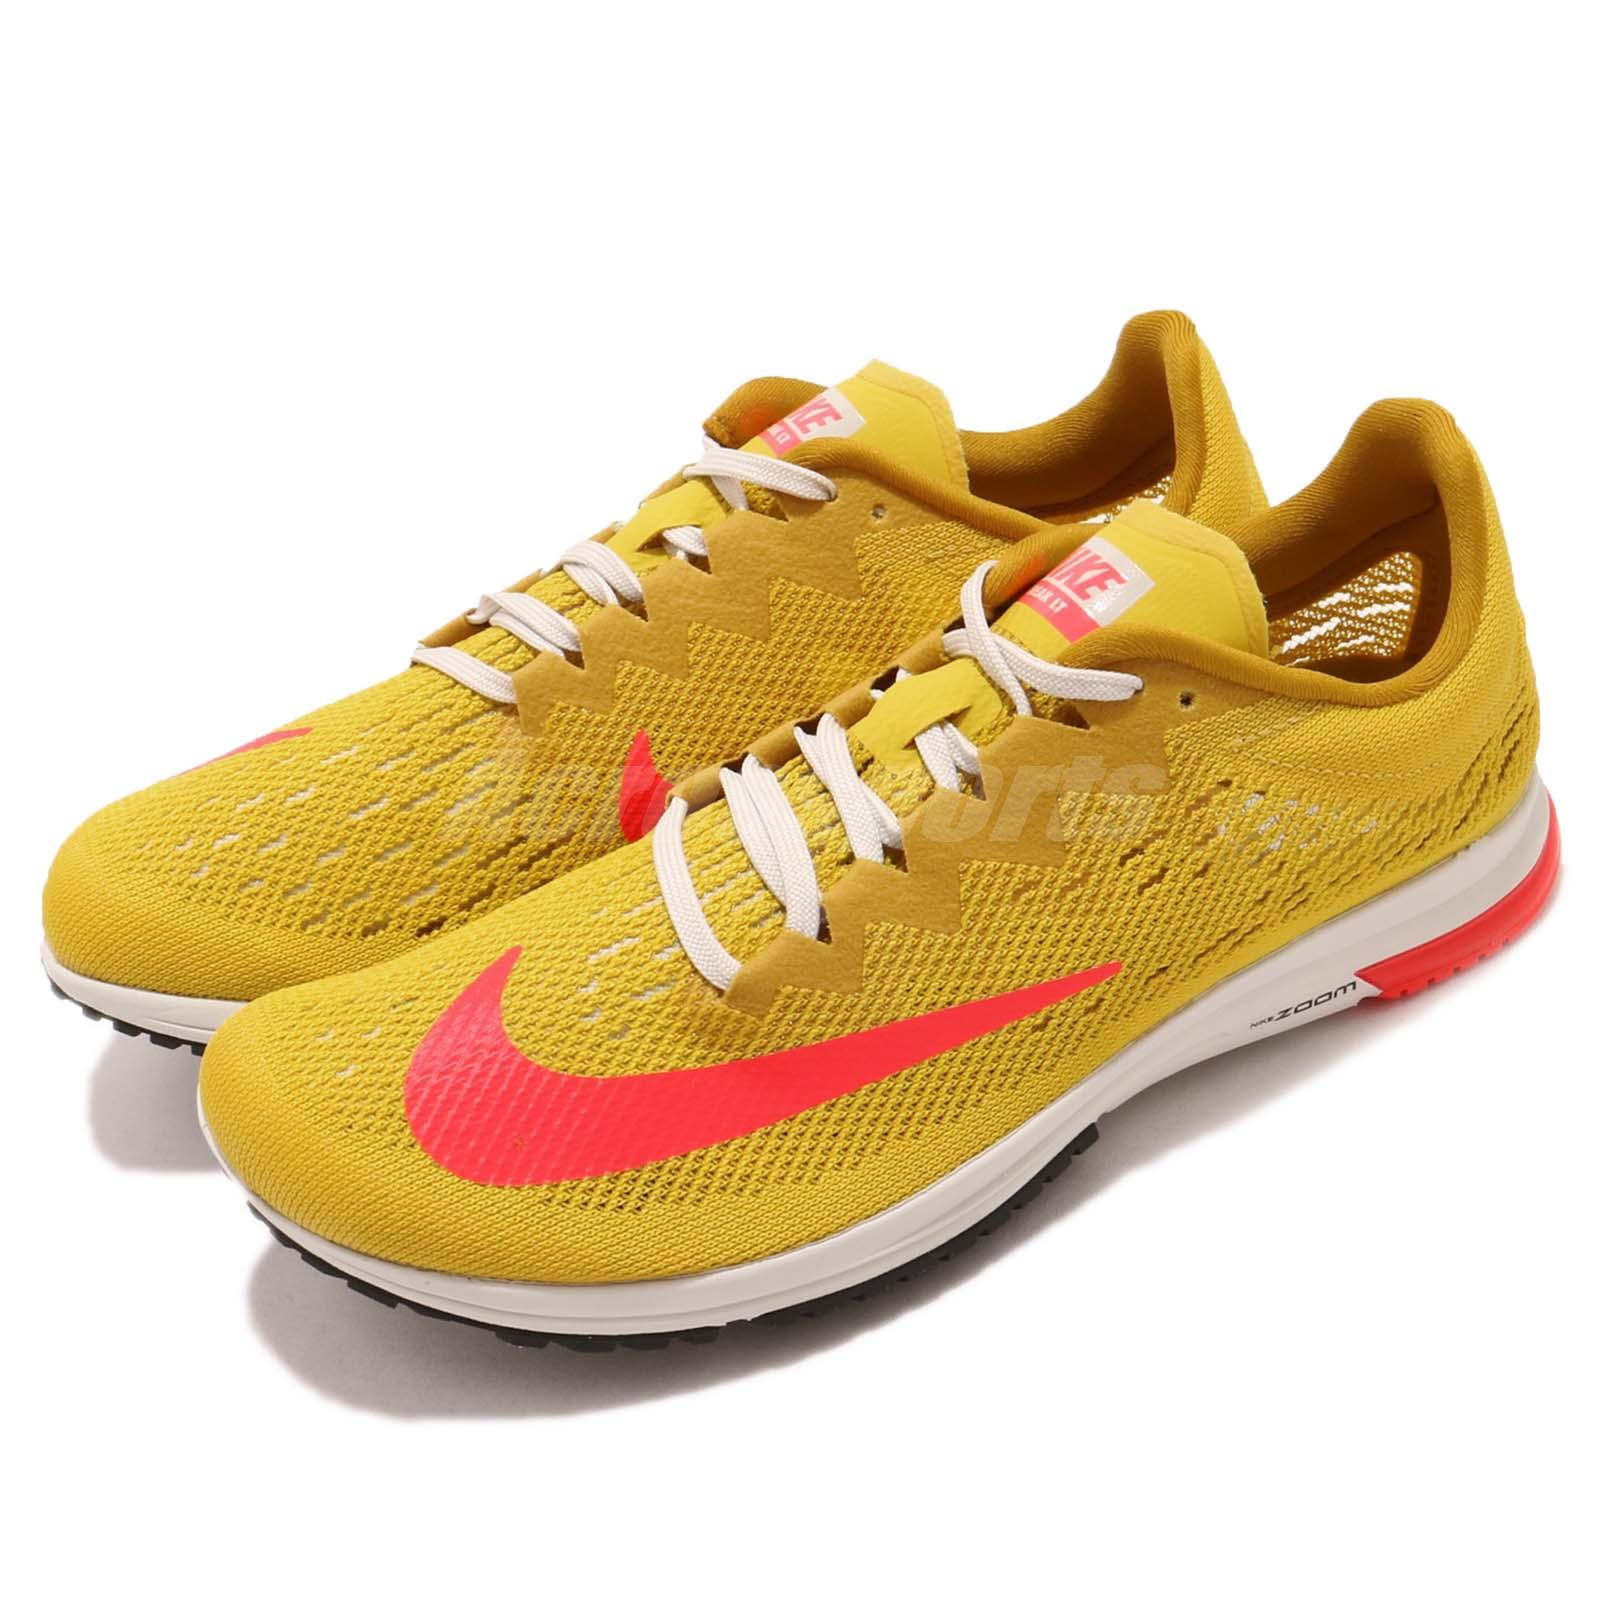 the latest 8834c 7b072 Details about Nike Air Zoom Streak LT 4 Yellow Pink Mens Racing Running  Shoes 924514-706